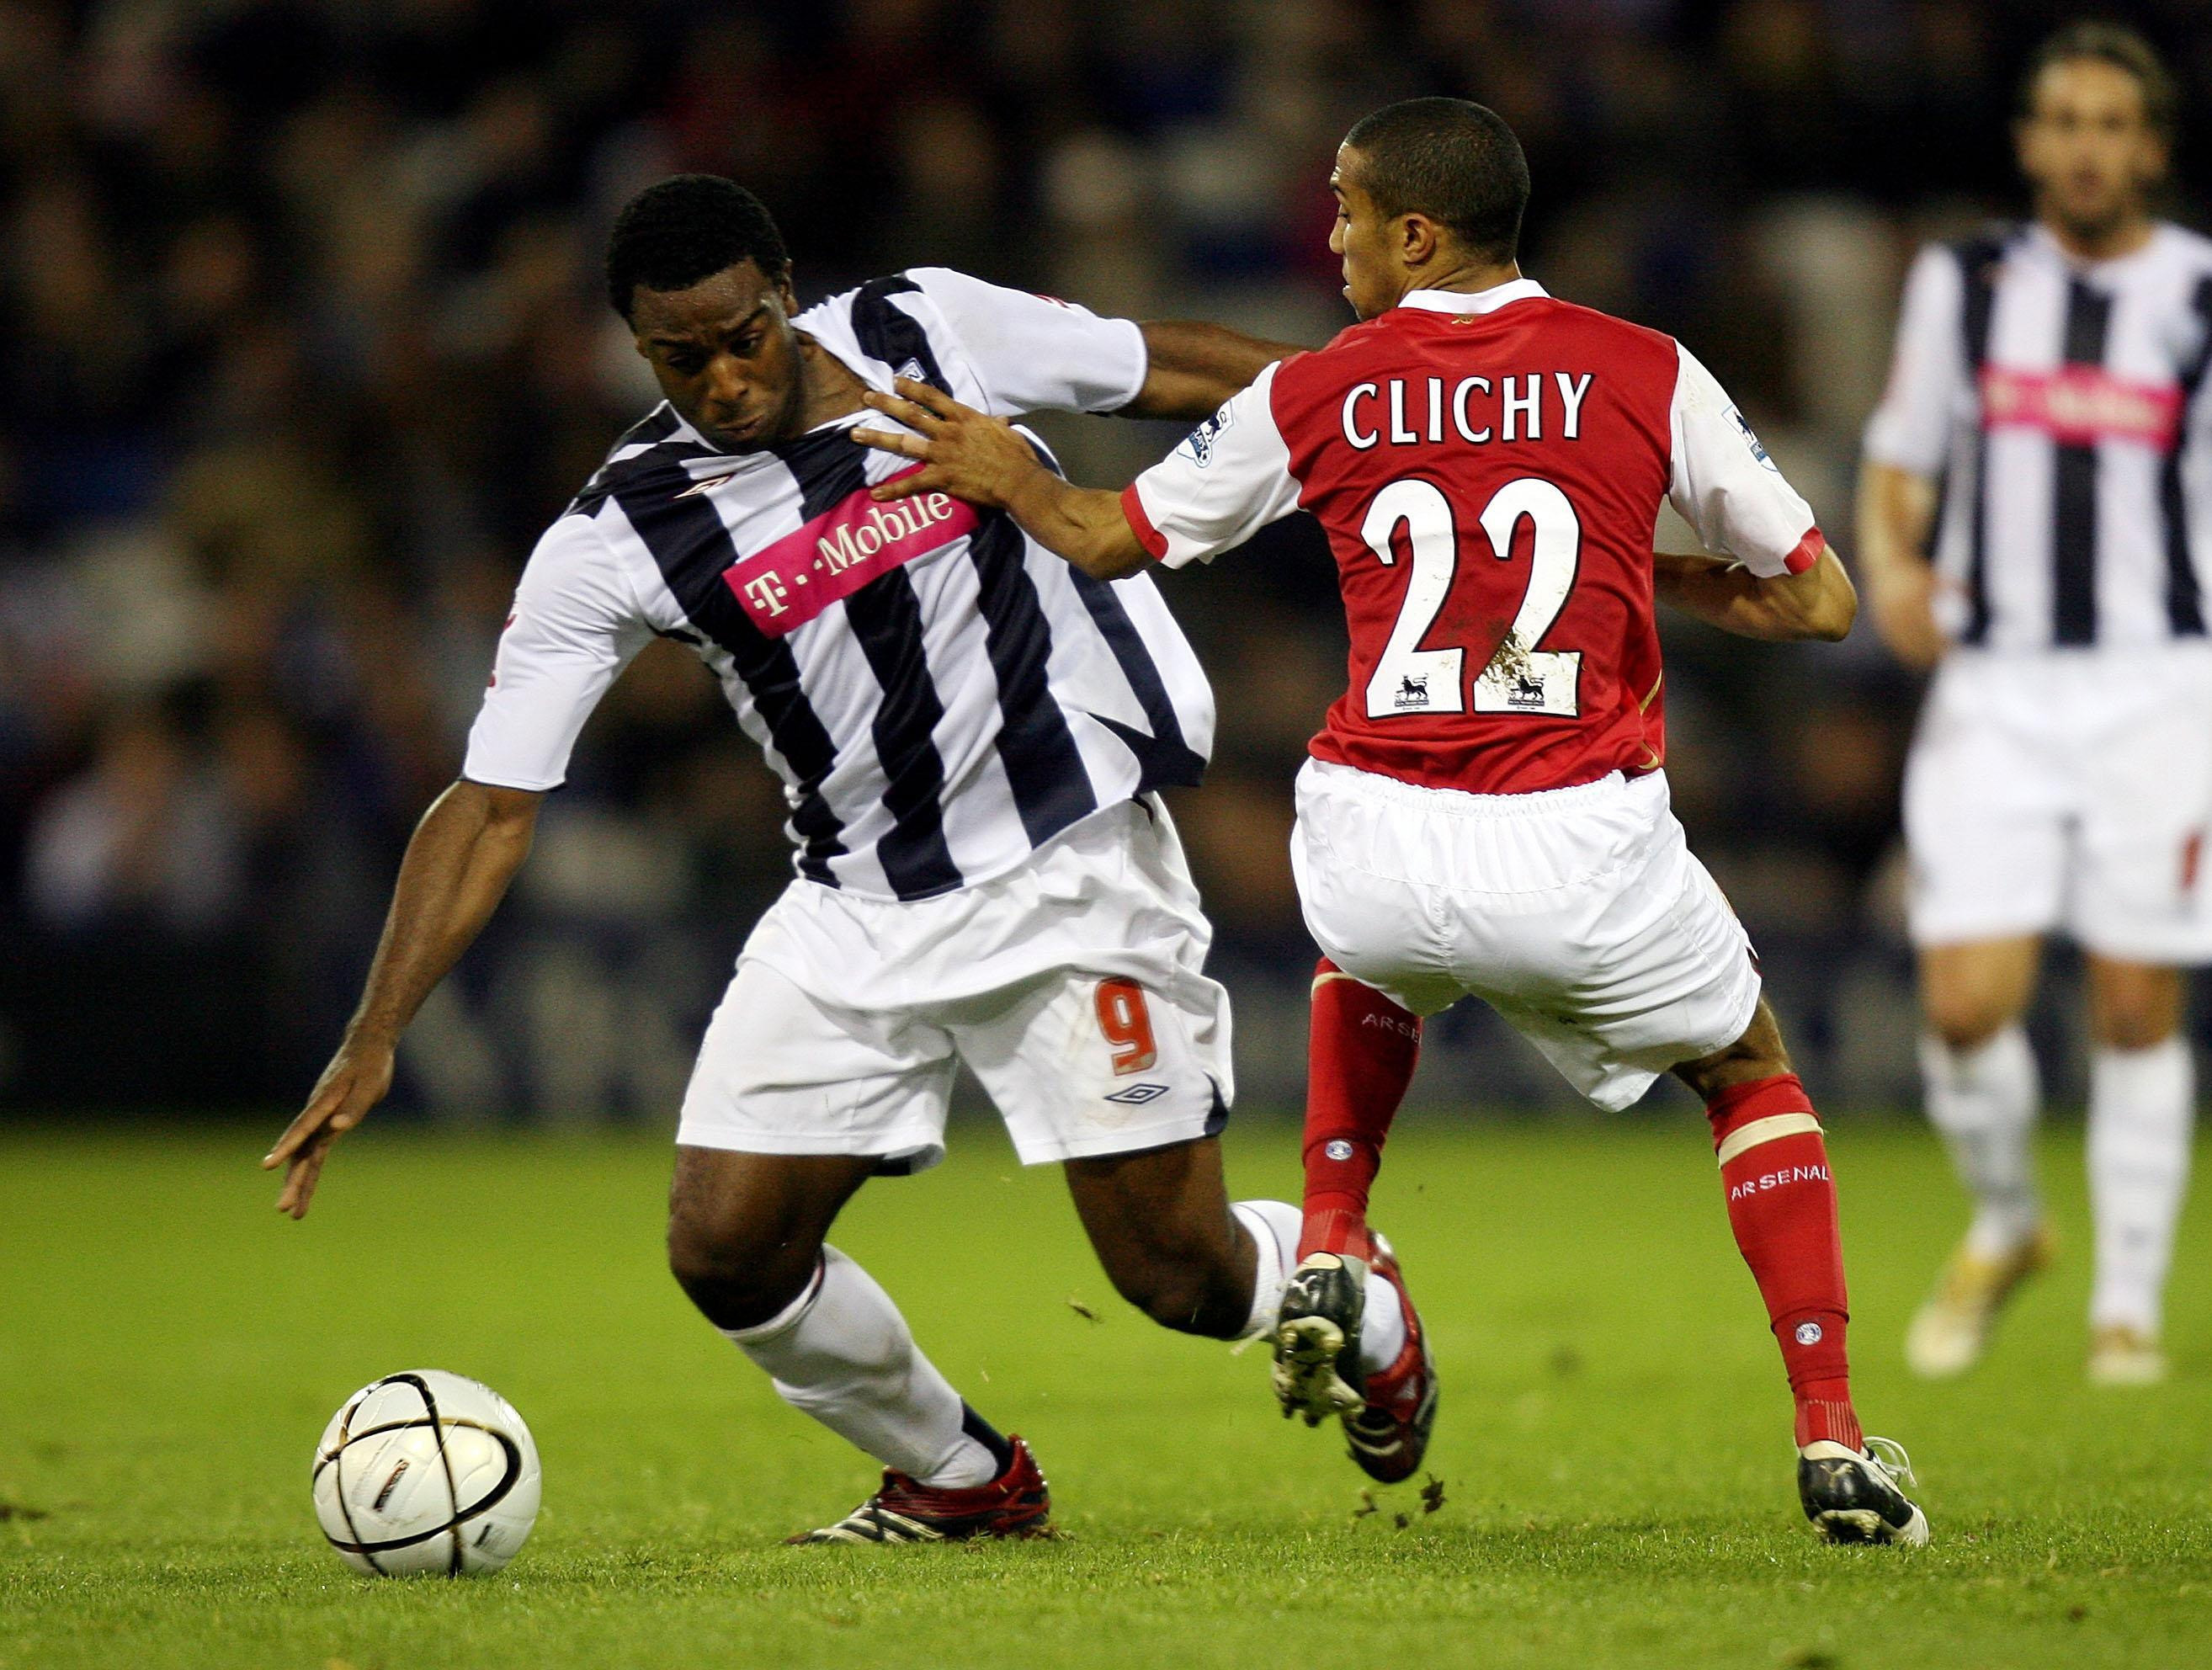 Former West Brom footballer Nathan Ellington plays against Arsenal